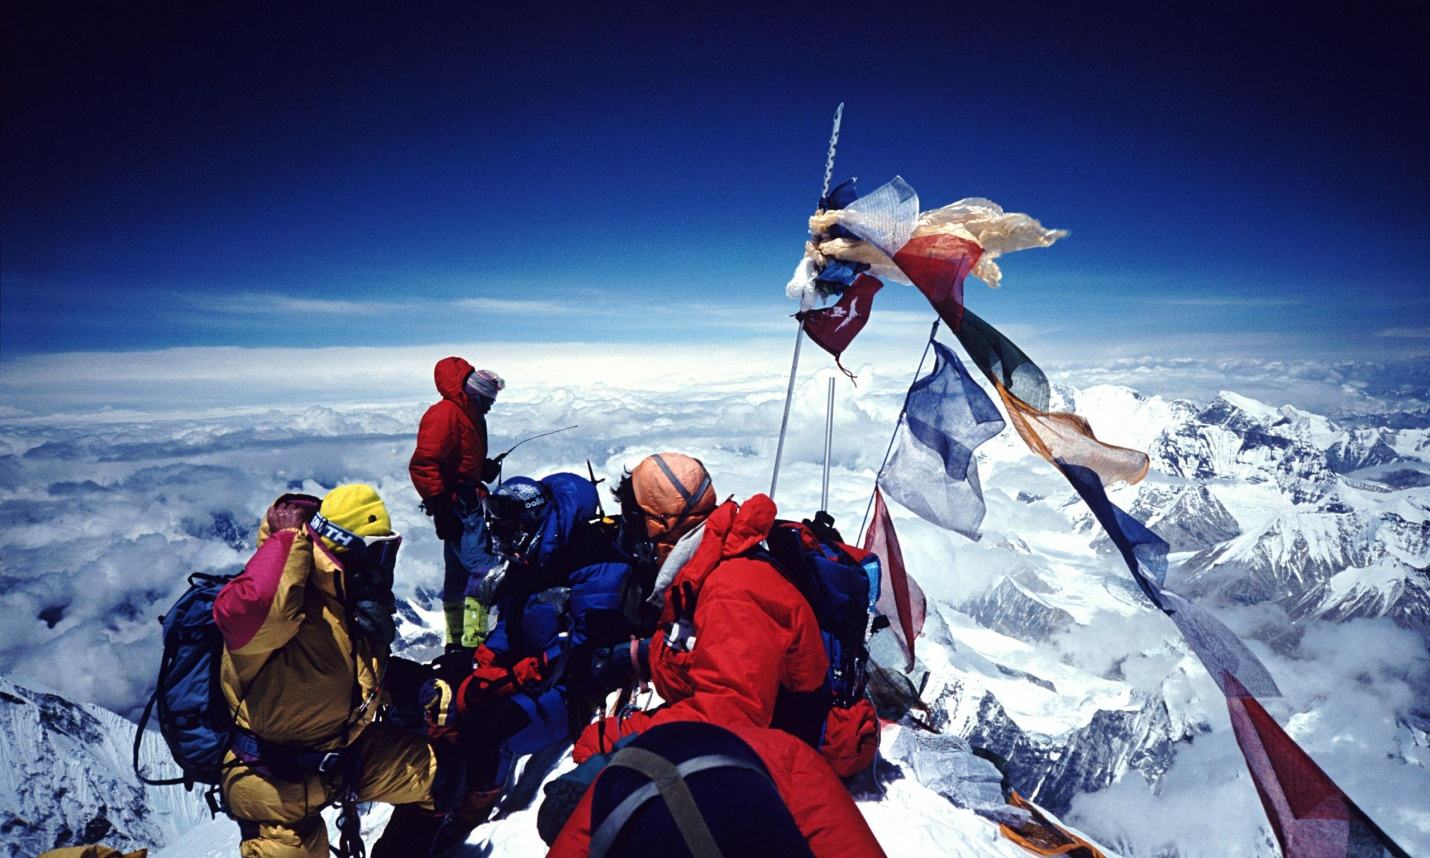 mount everest hillary and tenzing contrast